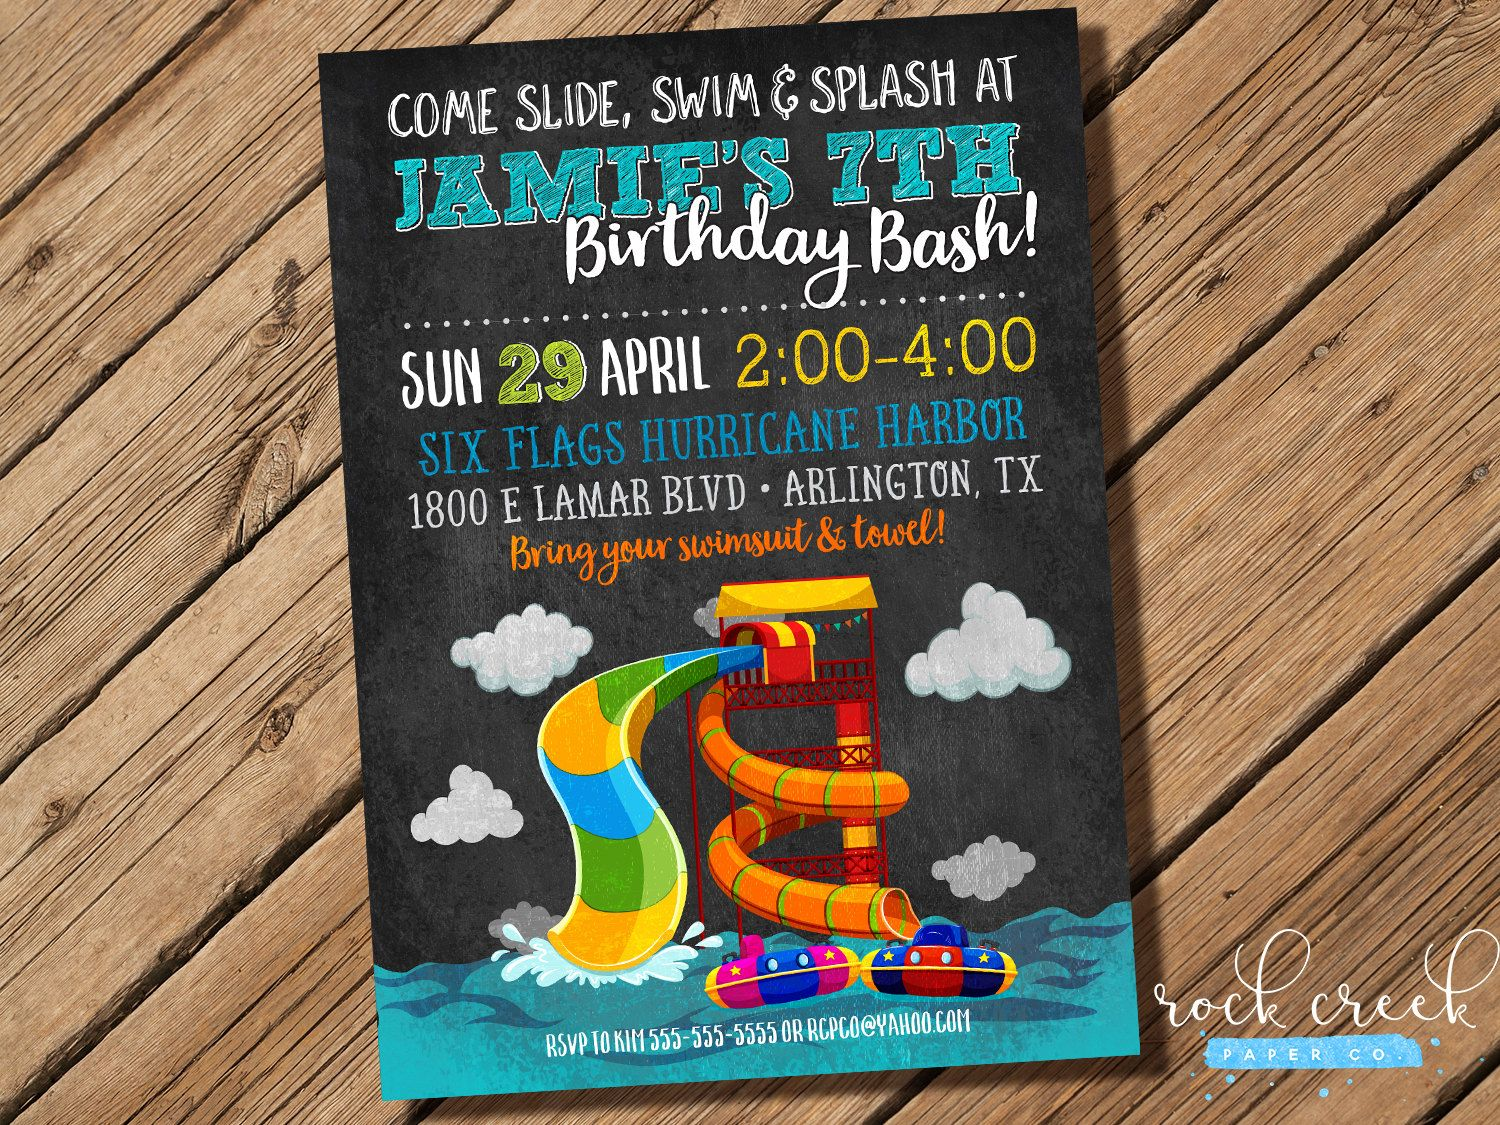 waterpark party invitation  water slide party  wave pool